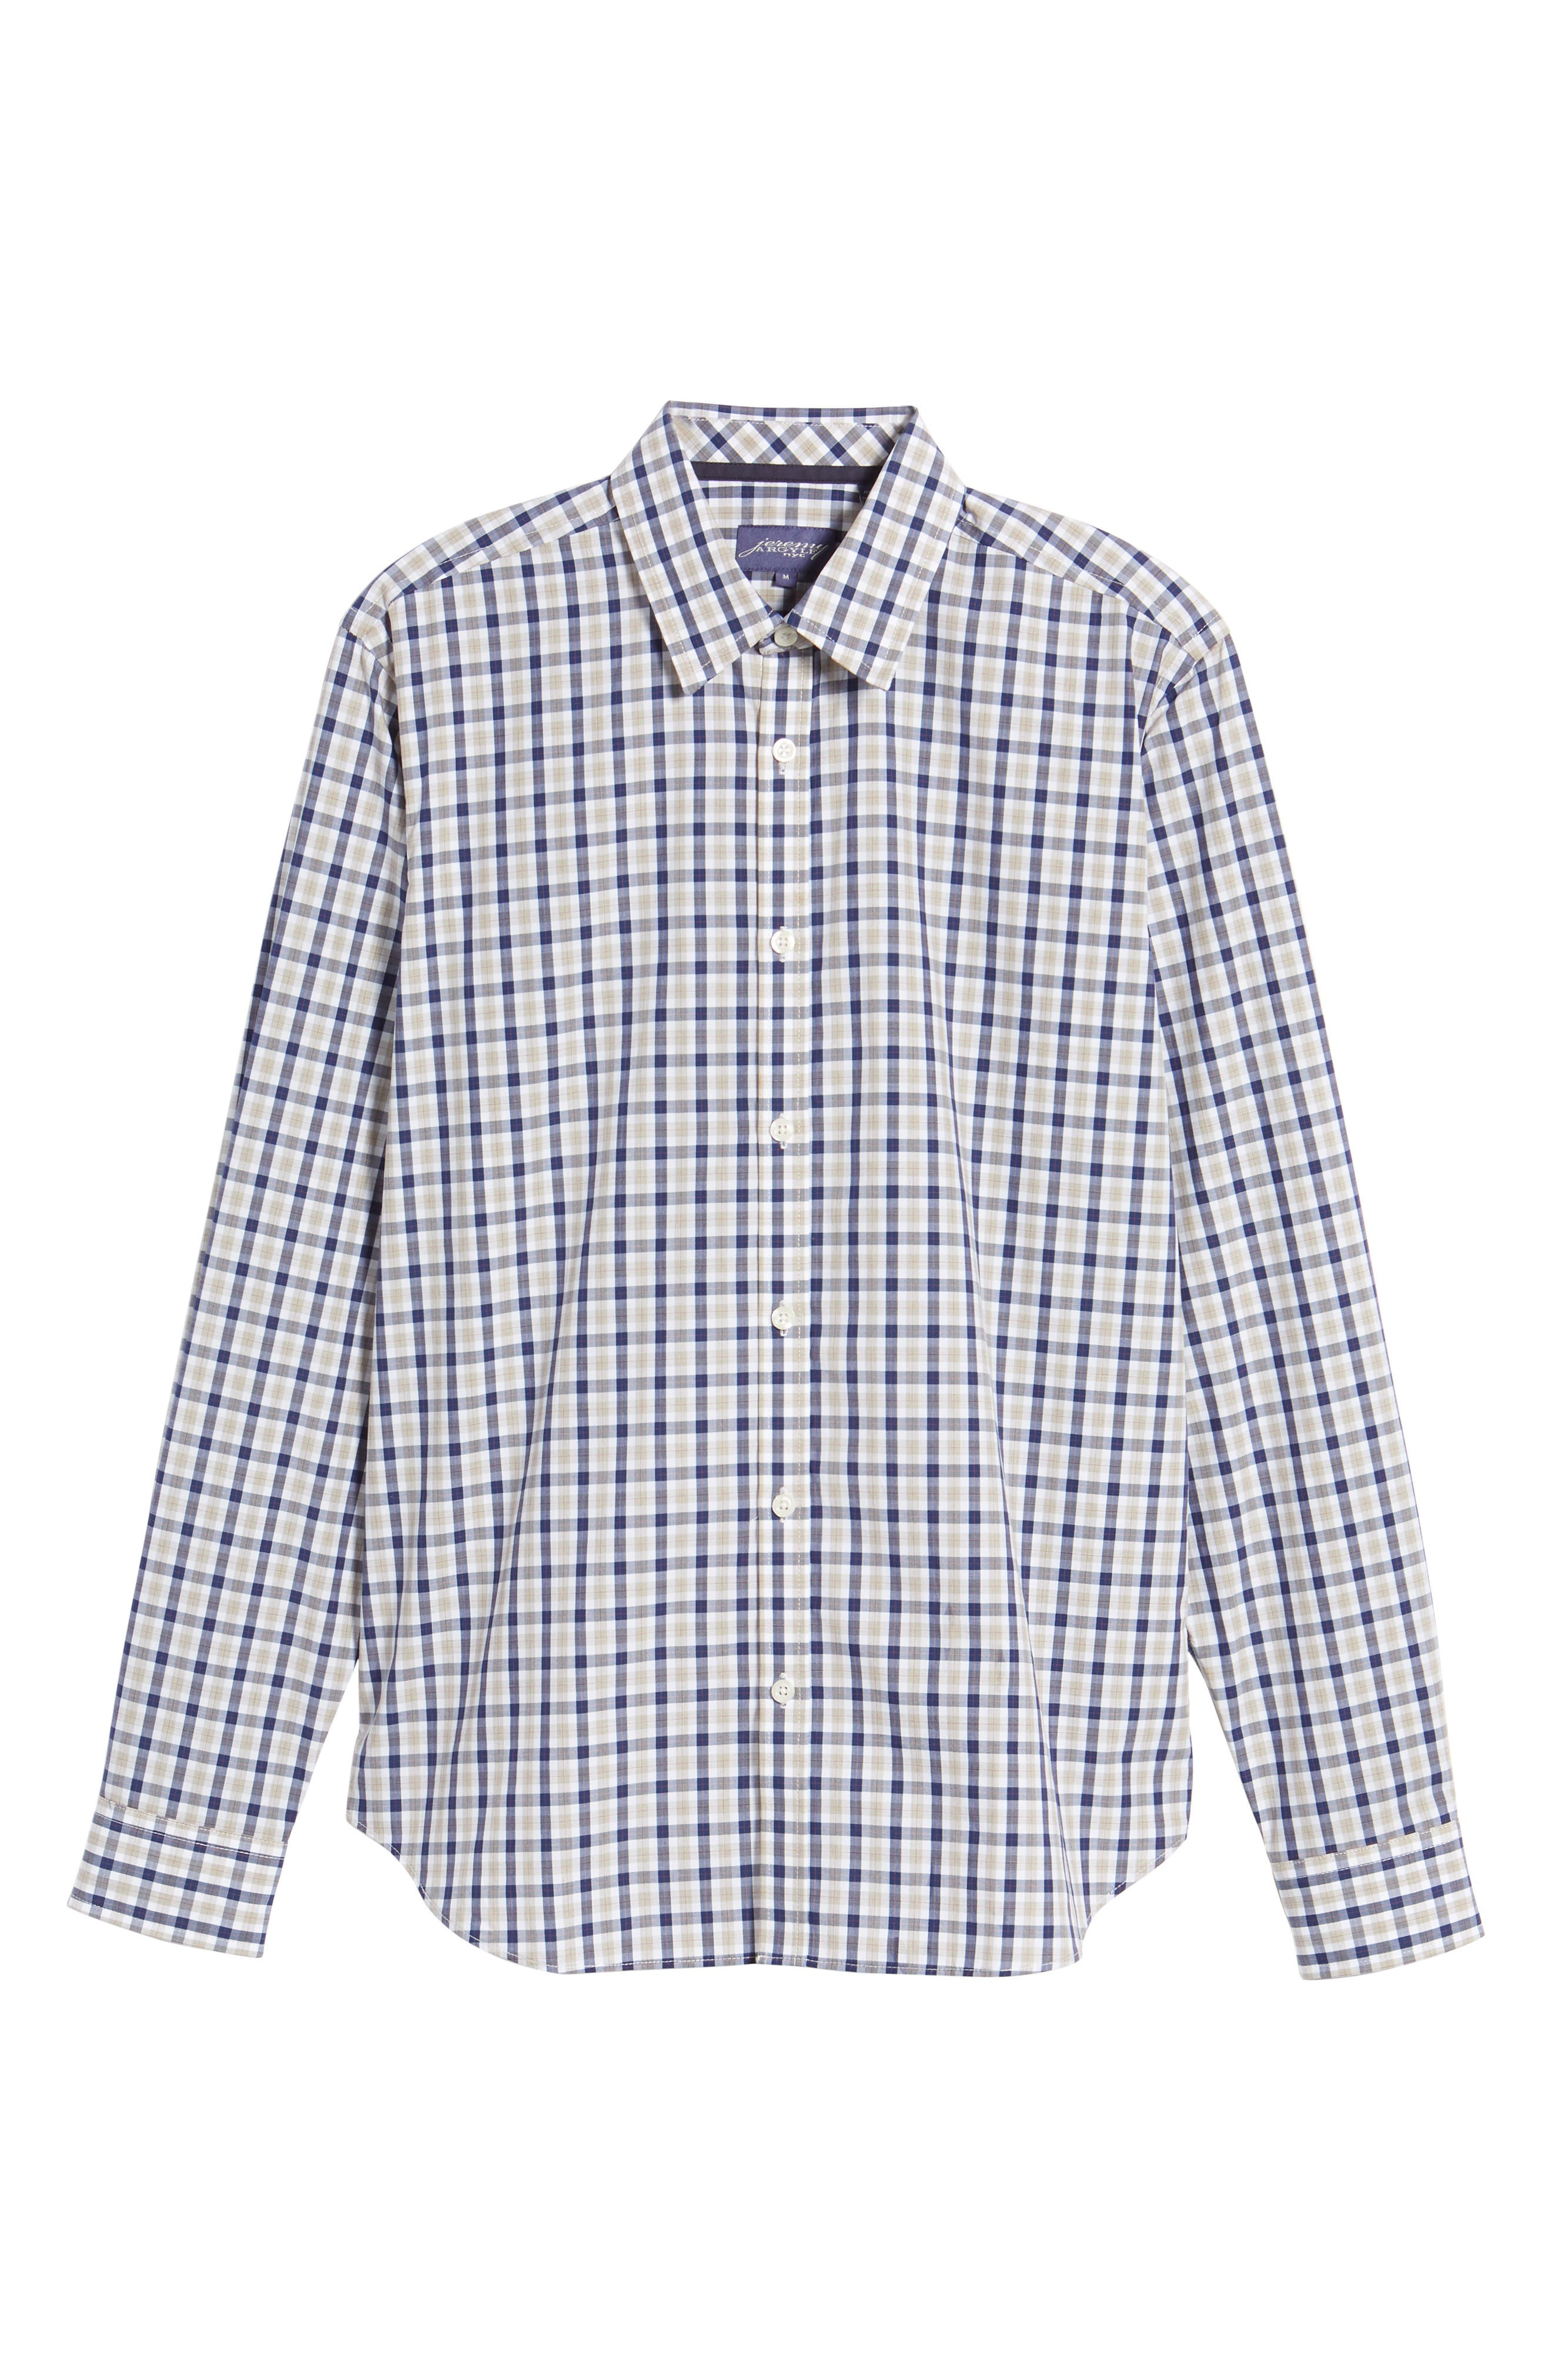 Fitted Plaid Sport Shirt,                             Alternate thumbnail 6, color,                             407